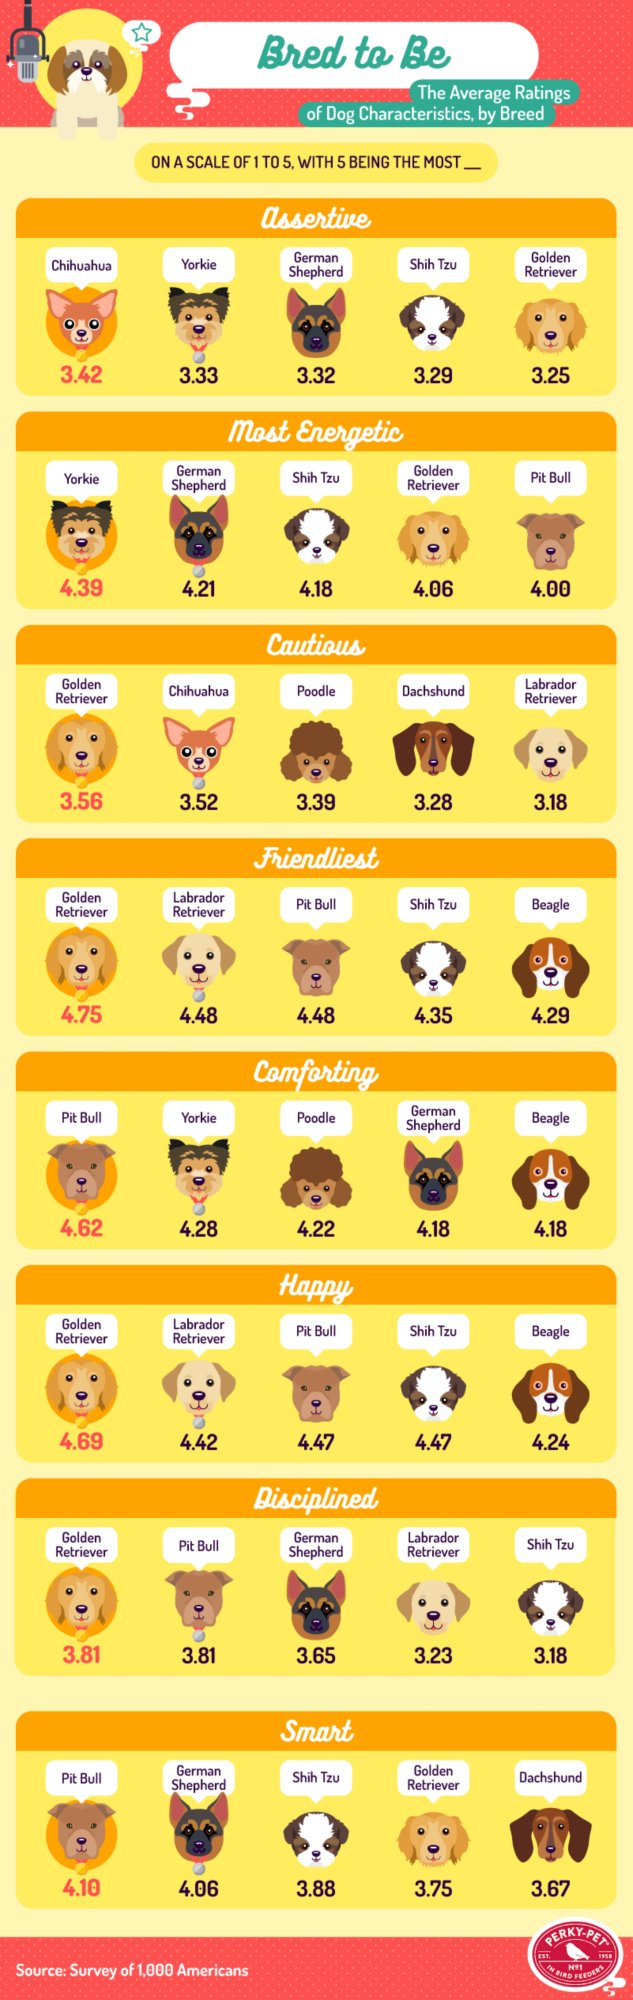 Ratings of Dog Characteristics by Breed